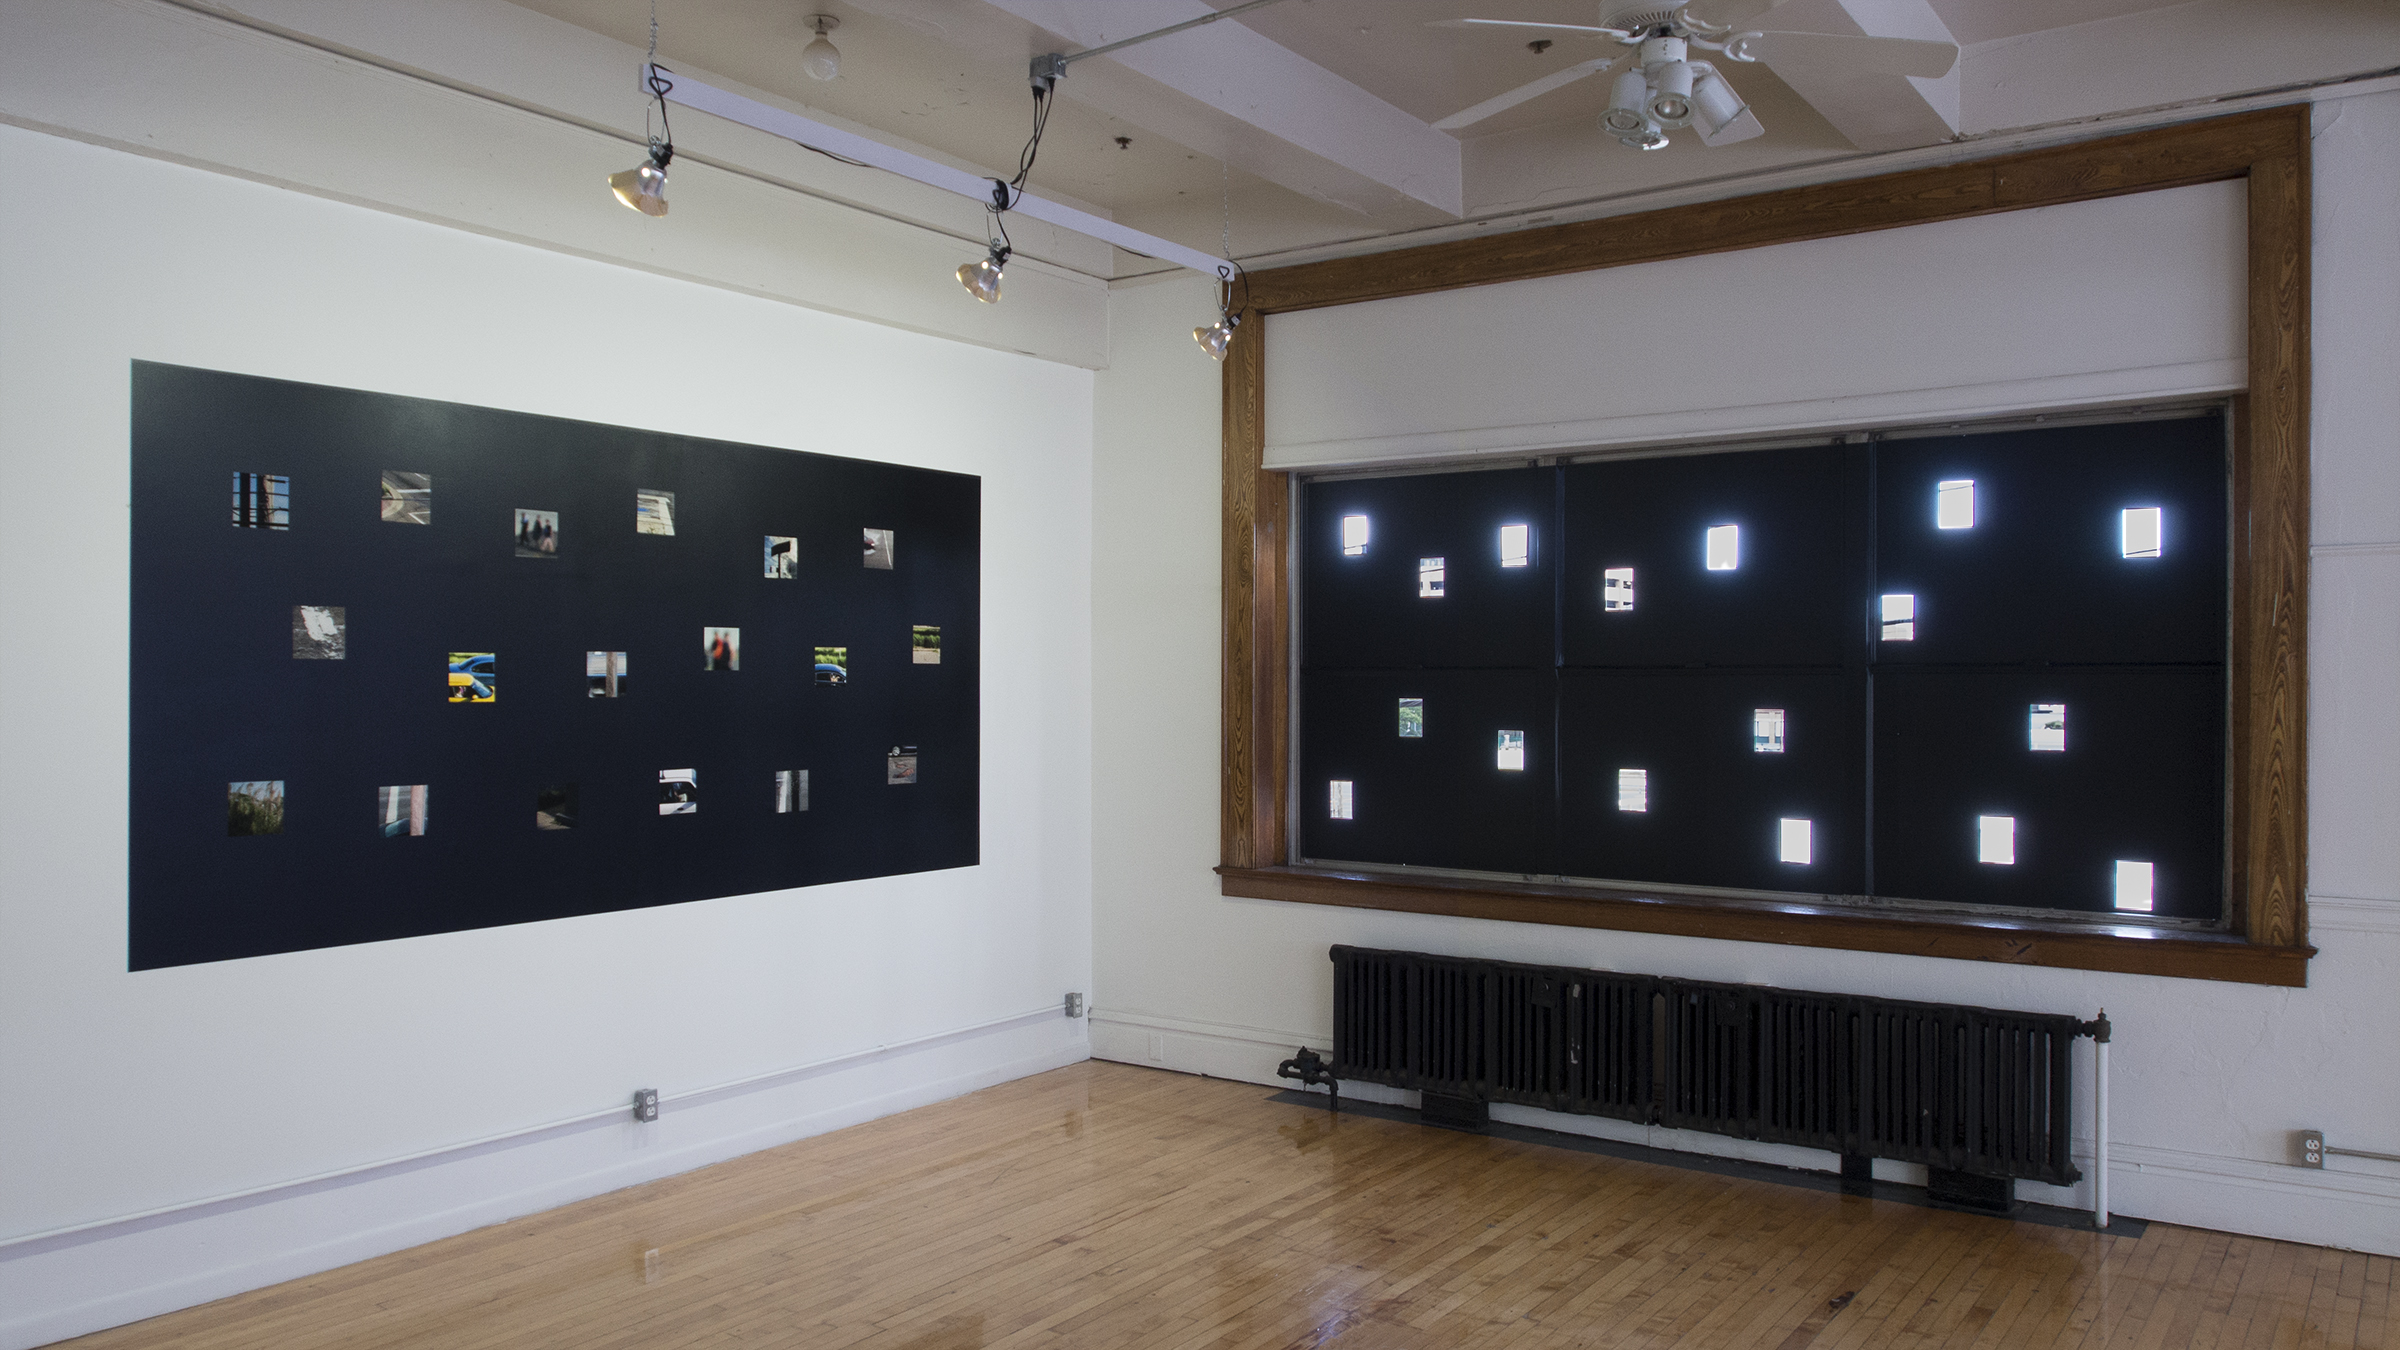 Photographic Actions,   2016 existing windows, archival inkjet prints on fine art paper, paint, shelf liner, background paper, gaffer tape